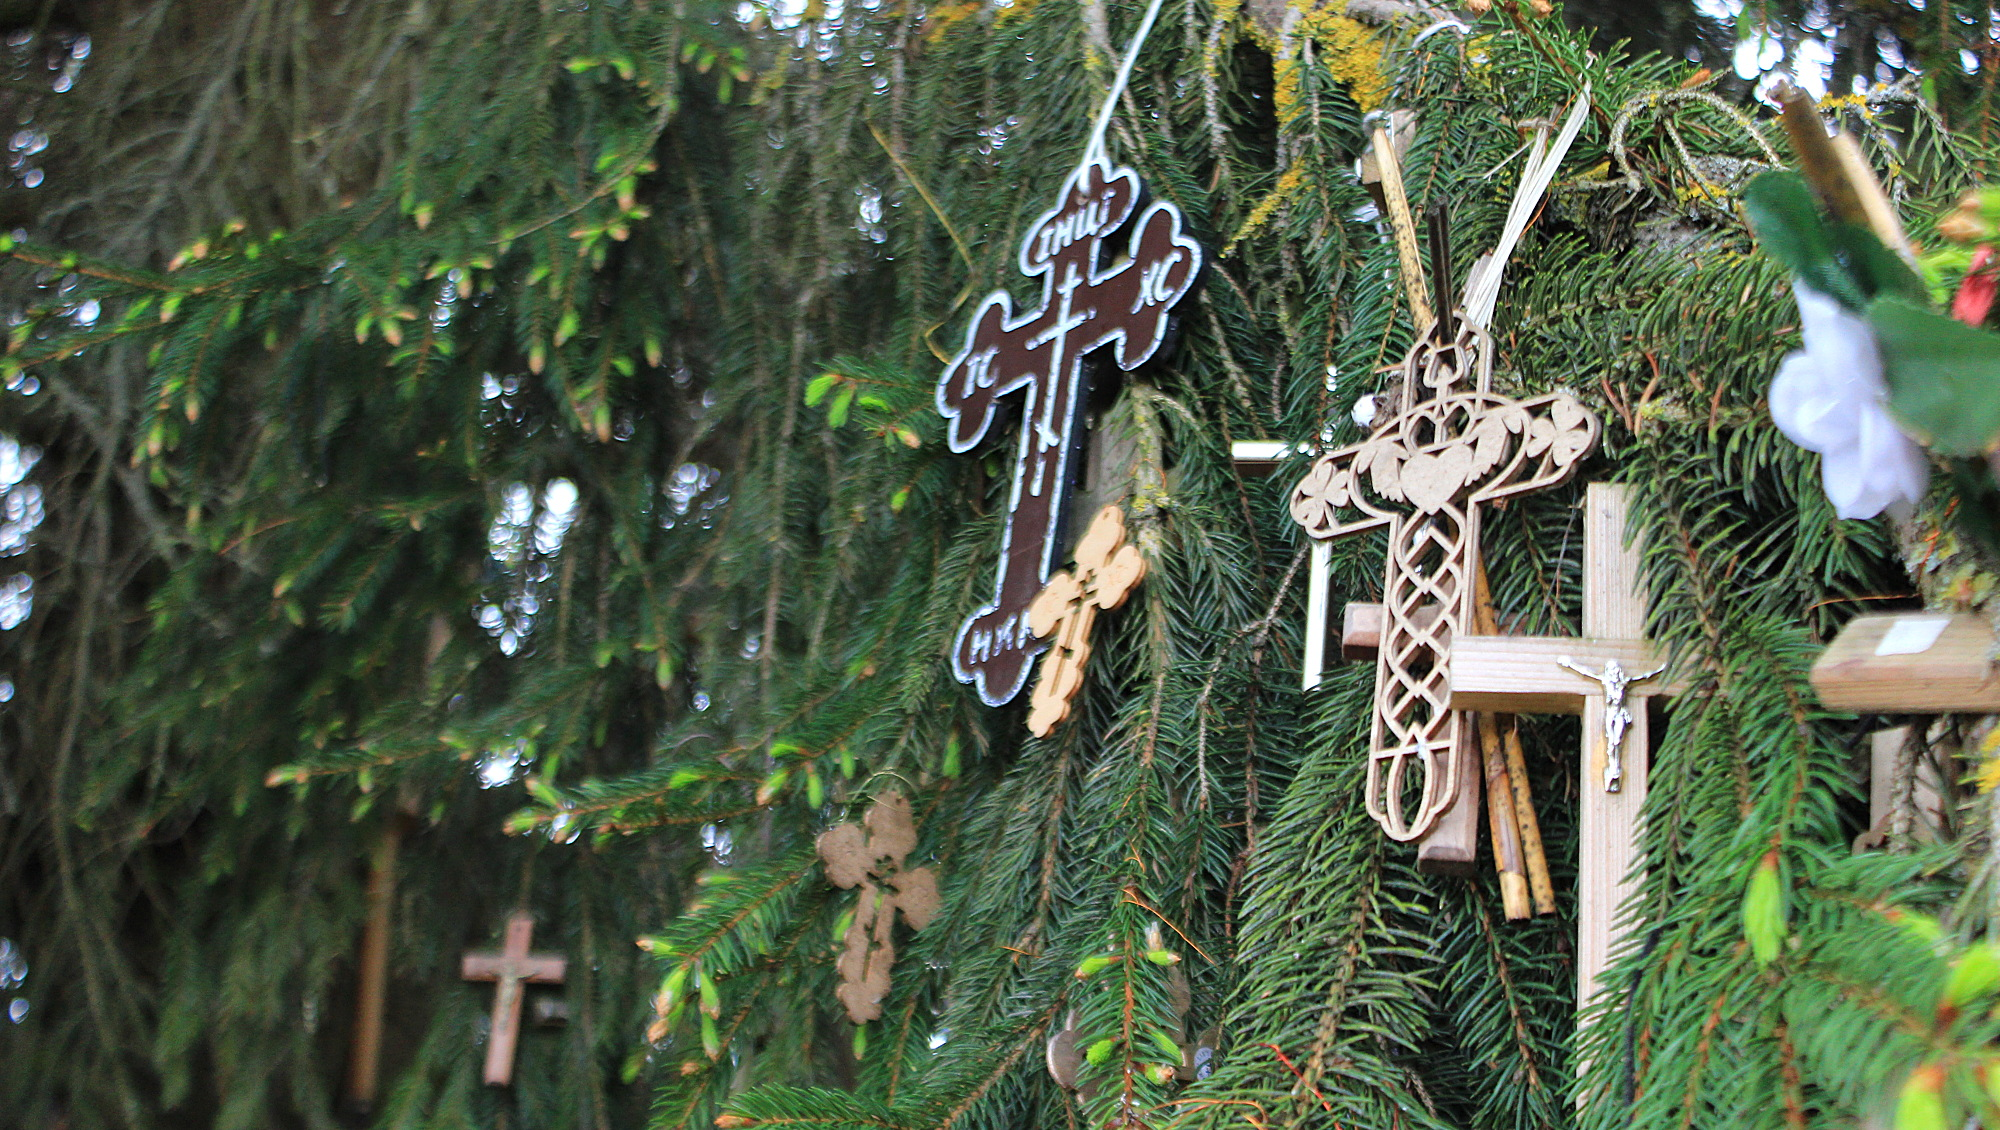 Crosses hanging from a pine tree like Christmas decorations.